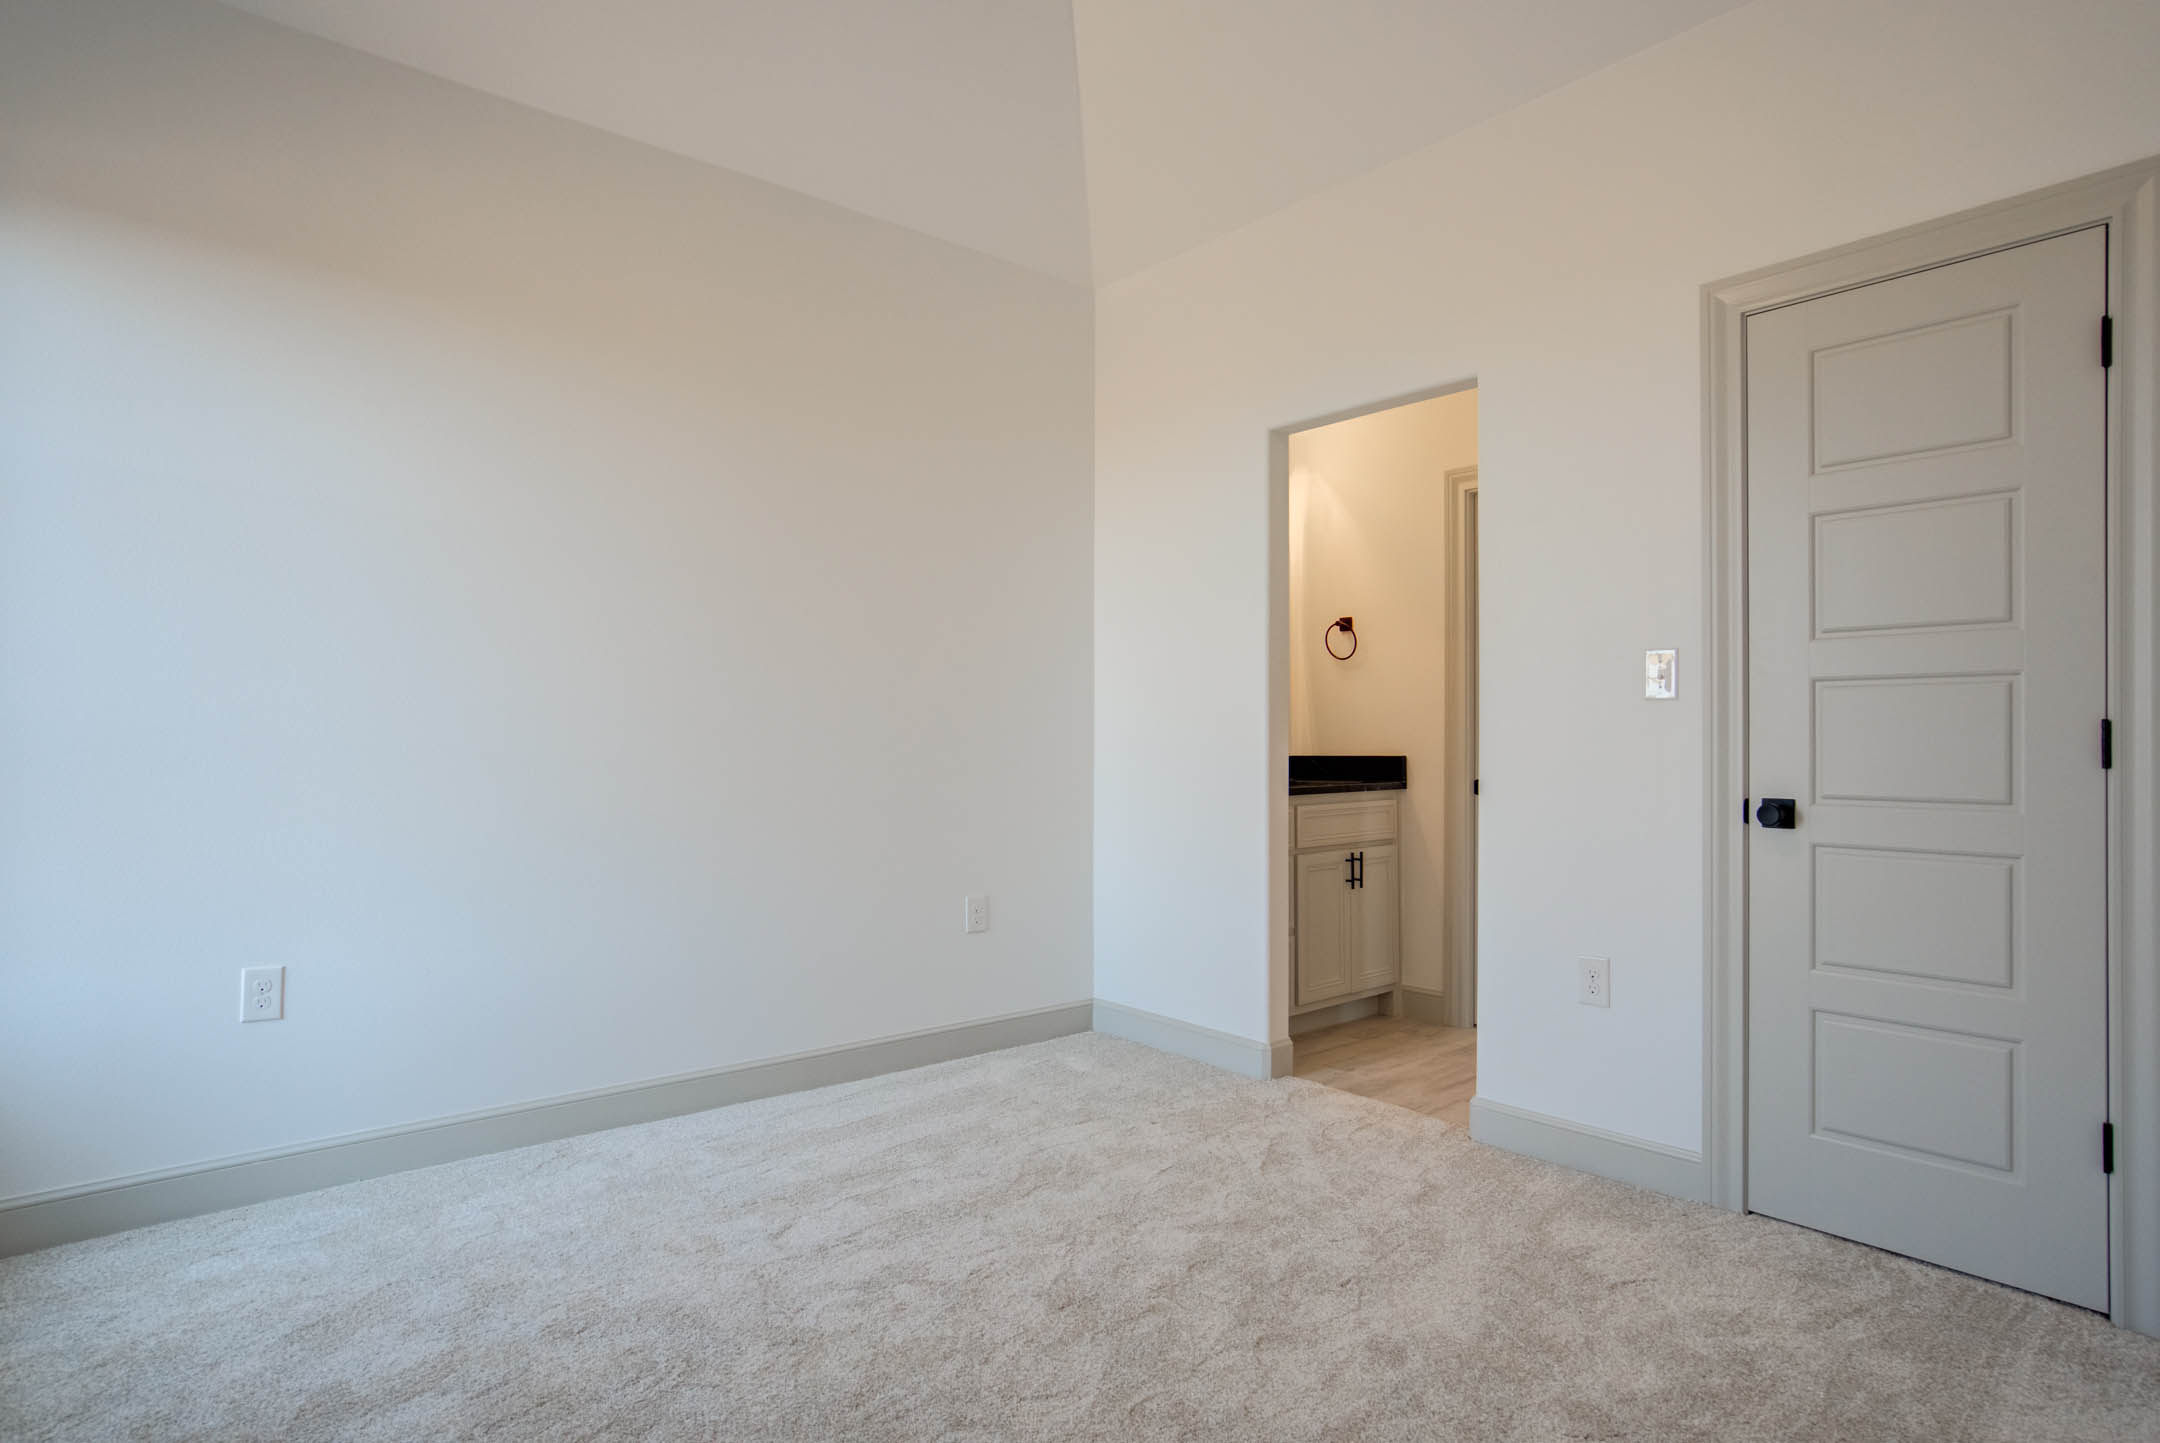 Spacious bedroom in new home for sale near Lubbock, Texas.